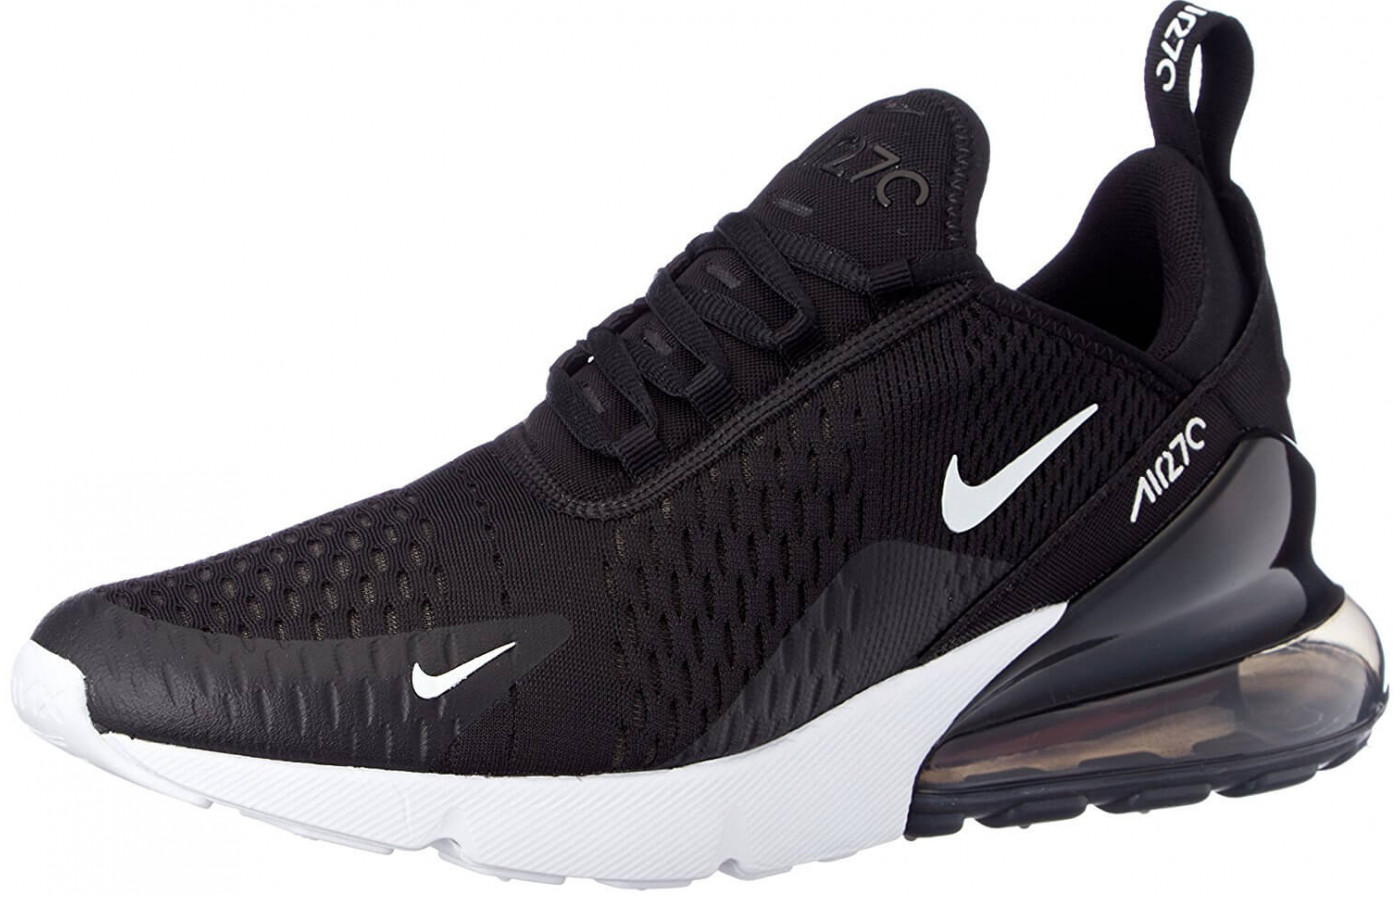 promo code 800e7 d2453 Nike Air Max 270. Mesh upper and 270 degrees of Air ...